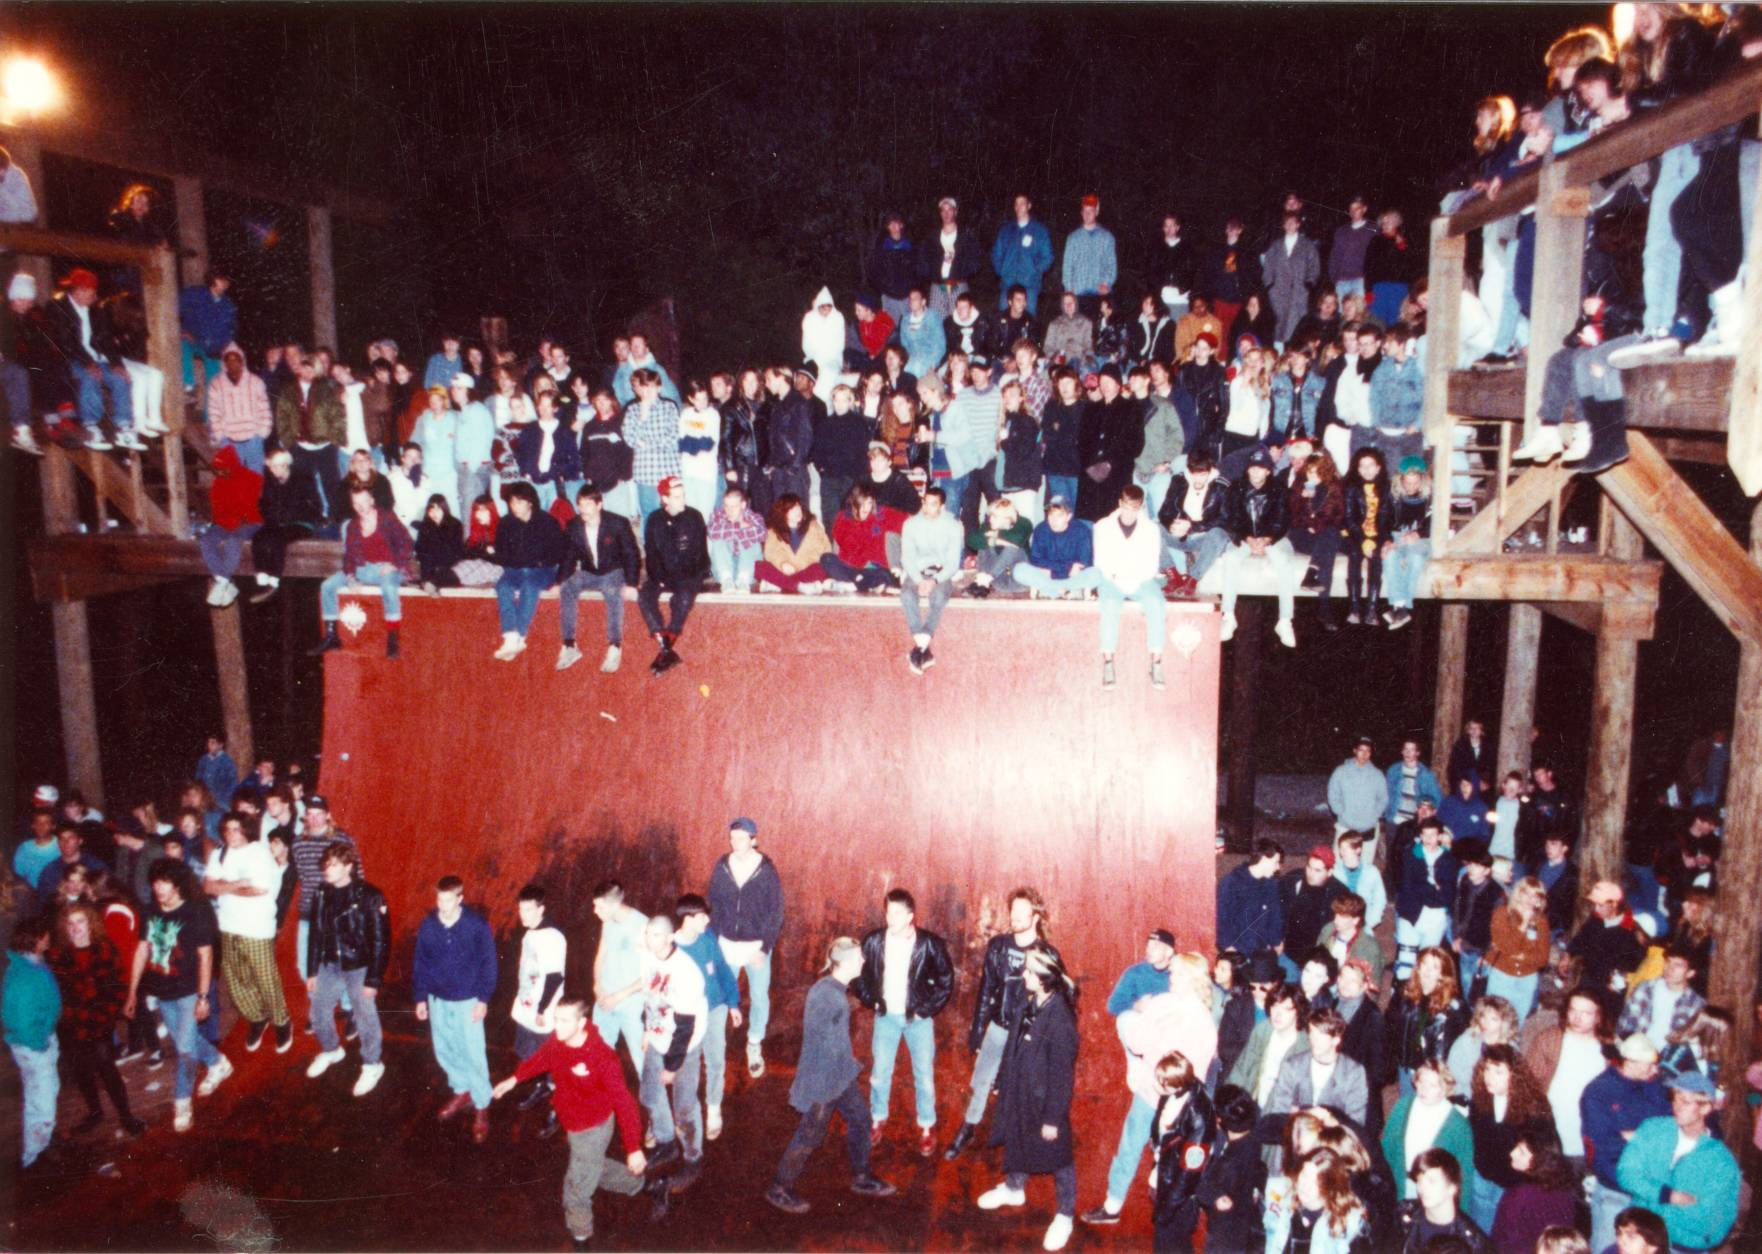 In the 1980s, skaters from around the world flocked to Cedar Crest Country Club, in Centreville, Va. (Courtesy Mike Maniglia)